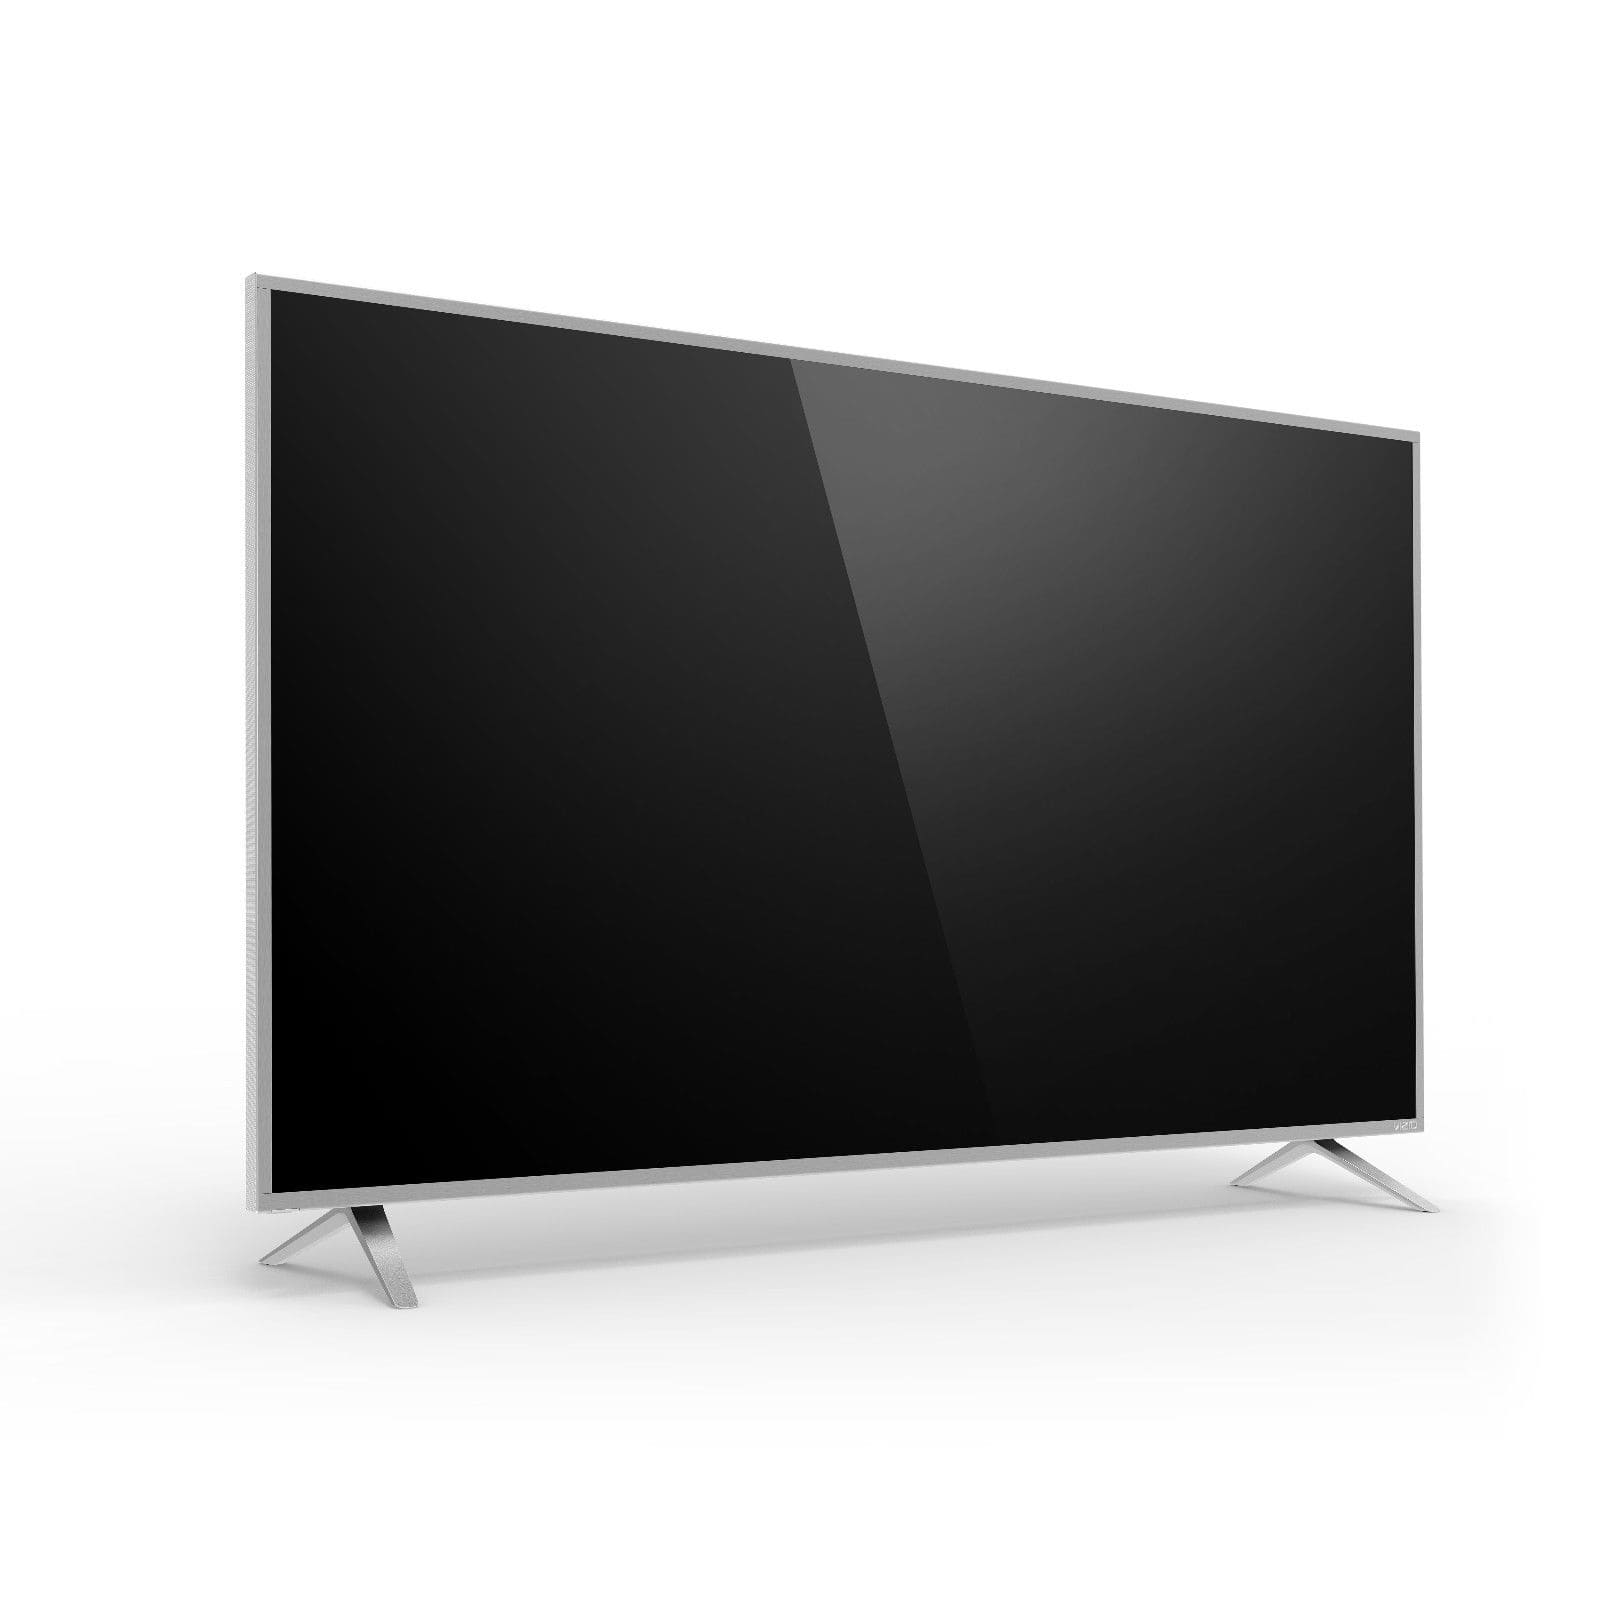 Manufacturer Refurbished VIZIO SmartCast P-Series P55-C1 (Tablet Remote Not Included) 699.99 $699.99